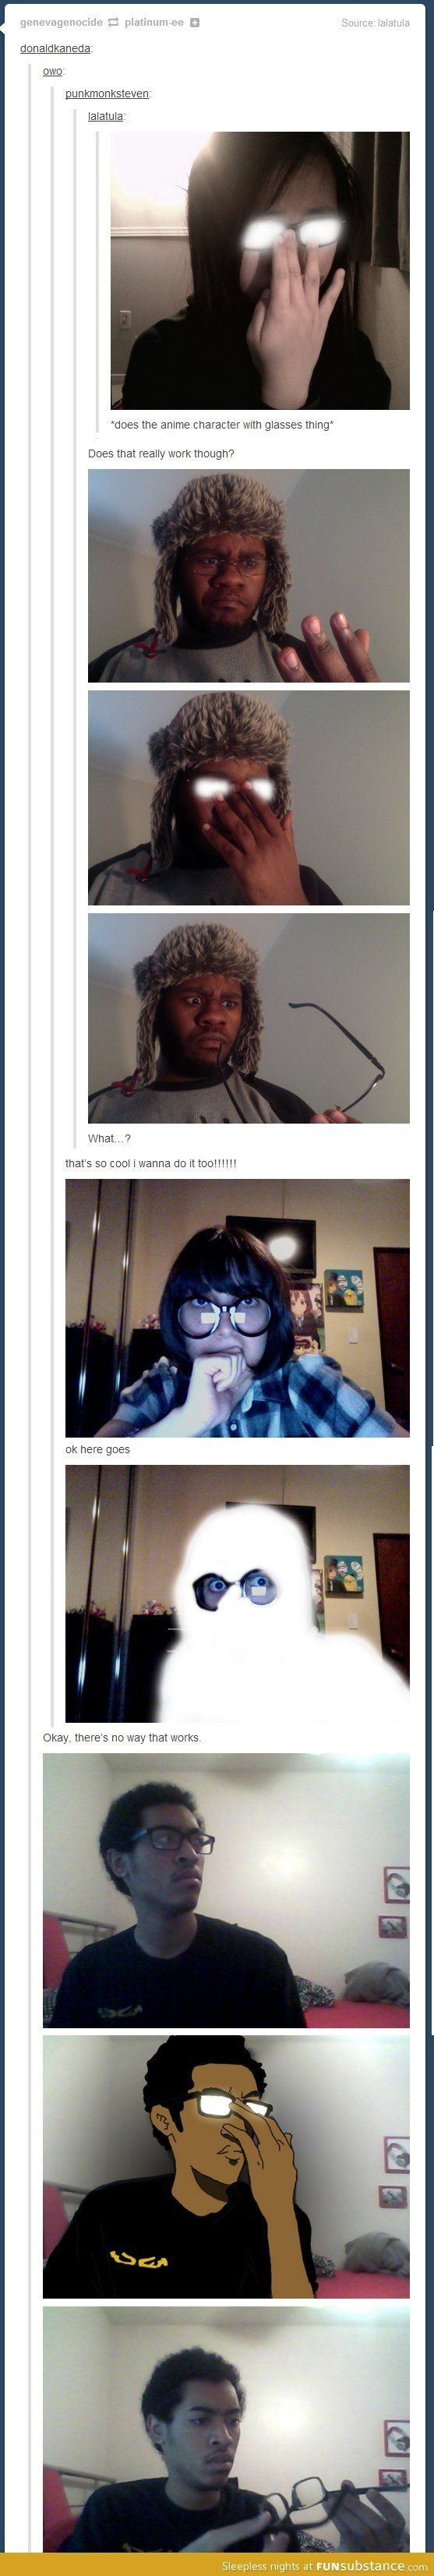 The otaku glasses thing